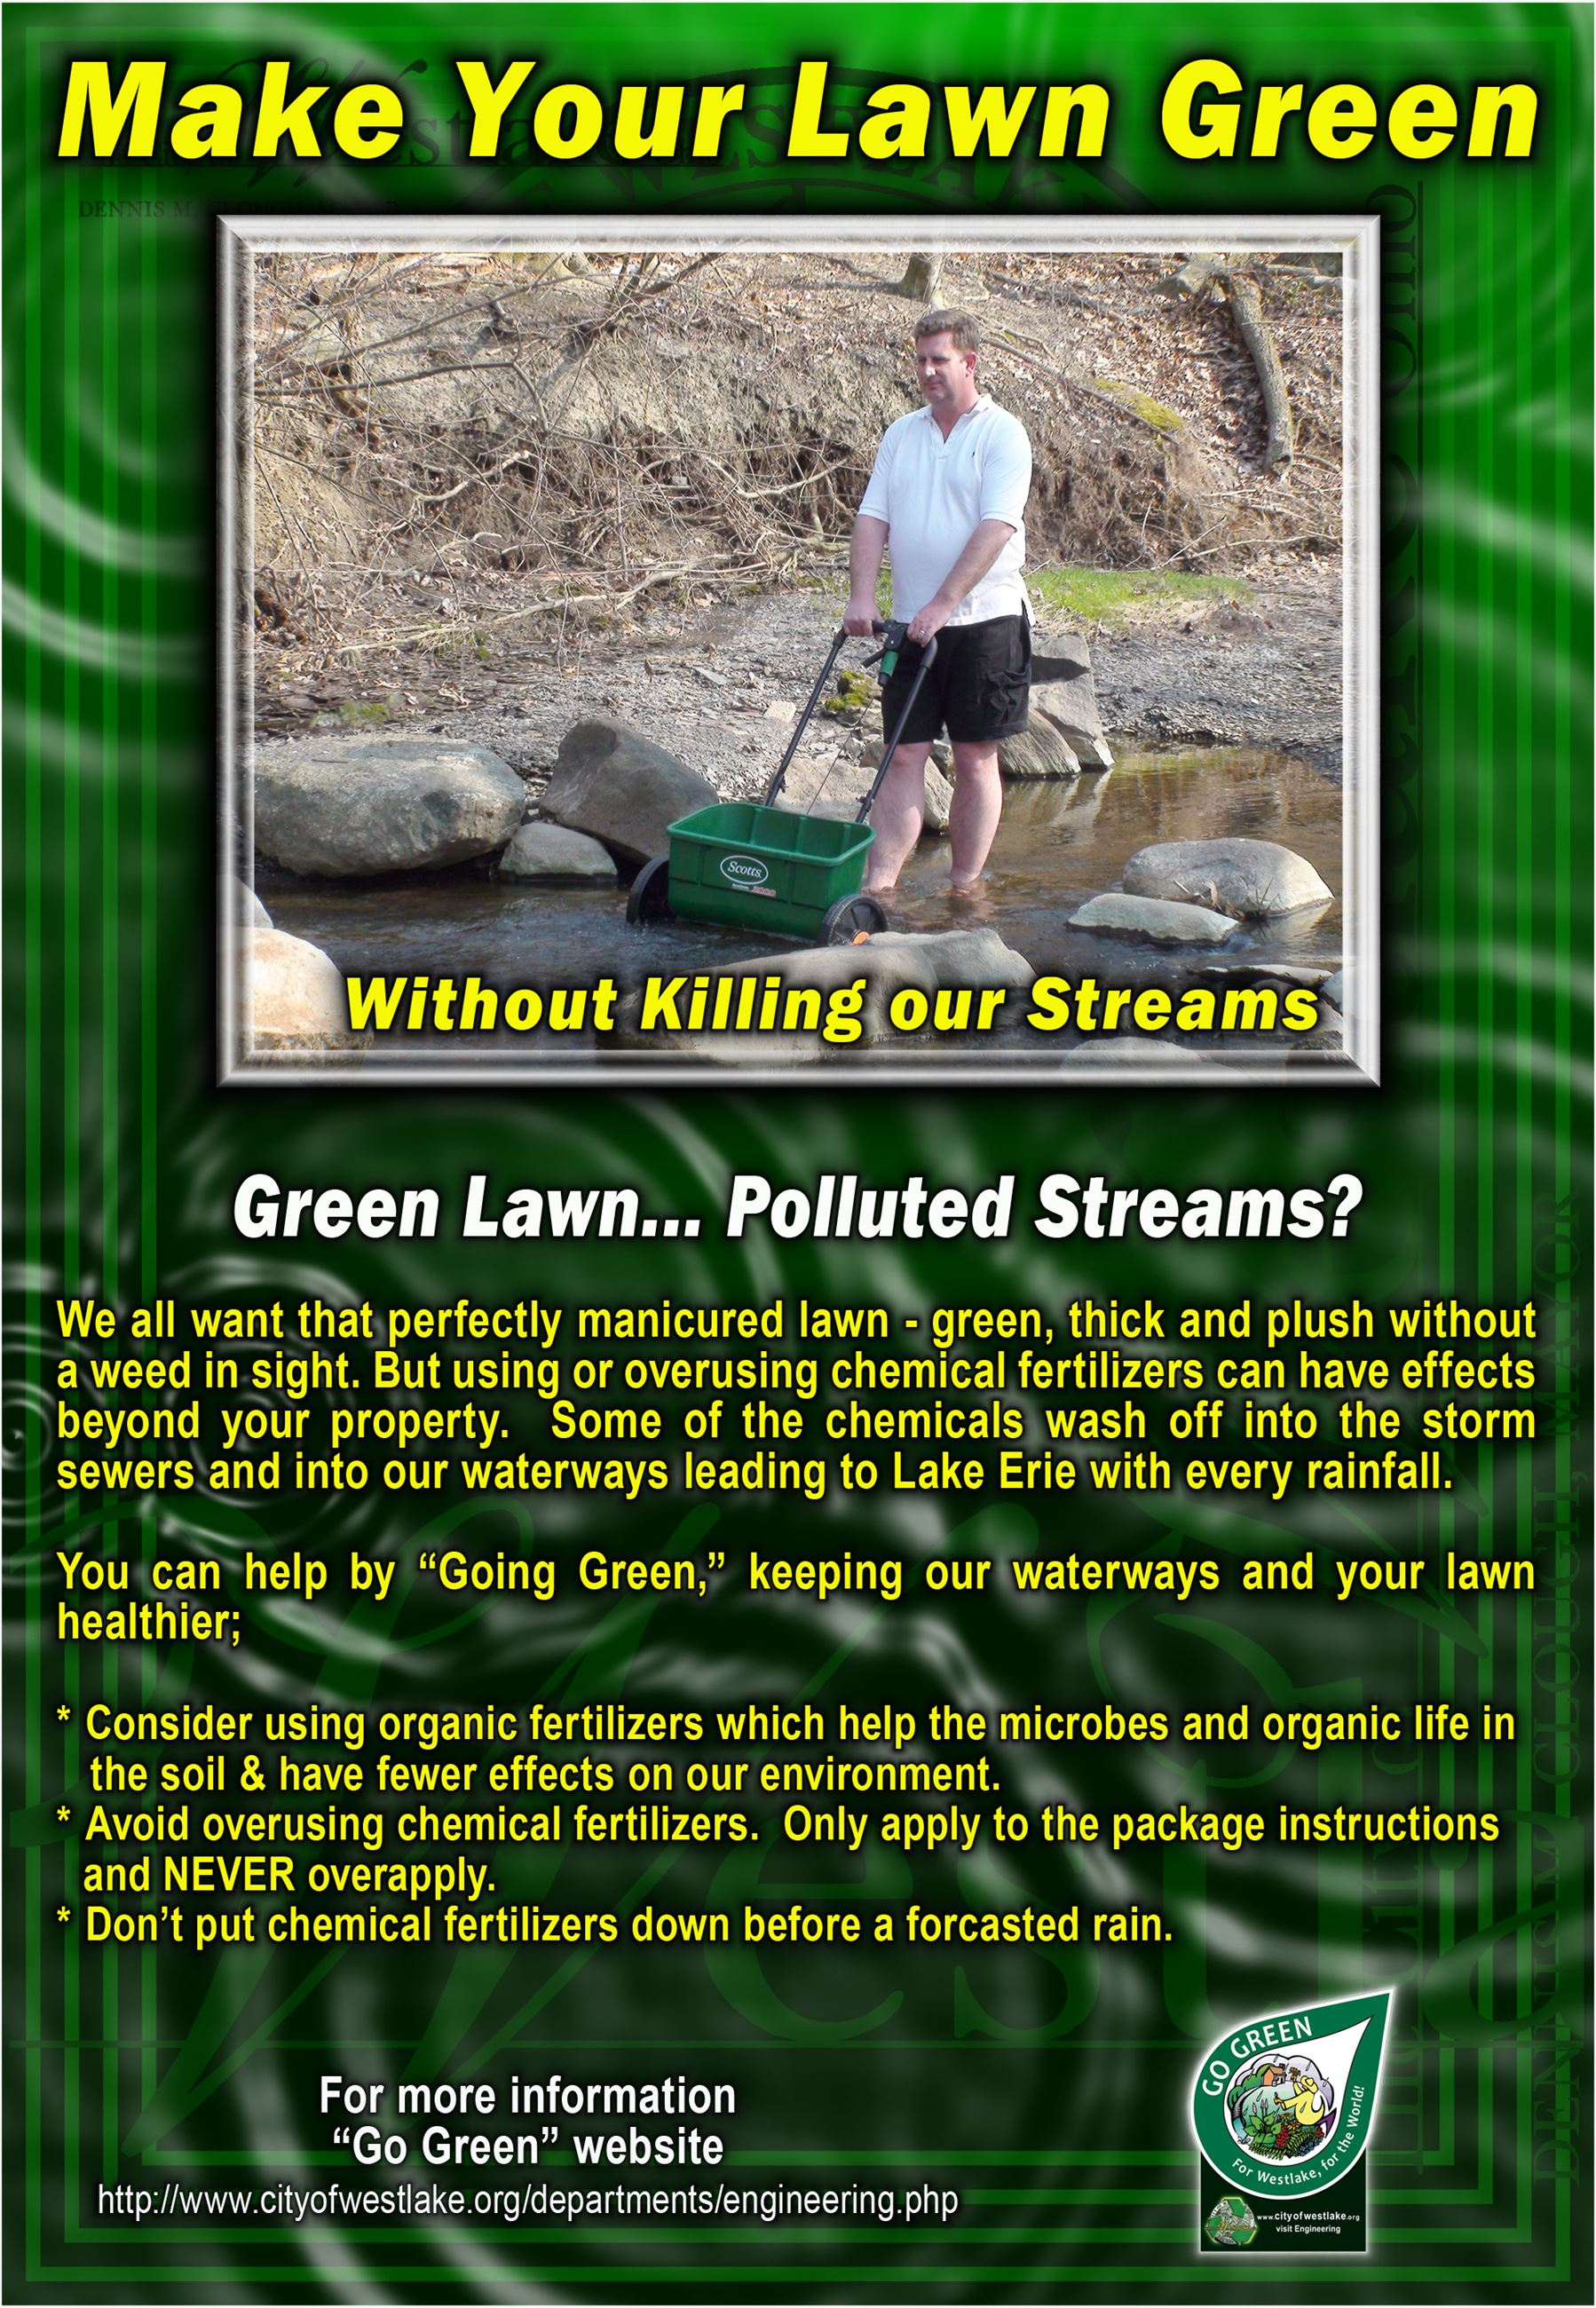 Make your lawn greeen poster